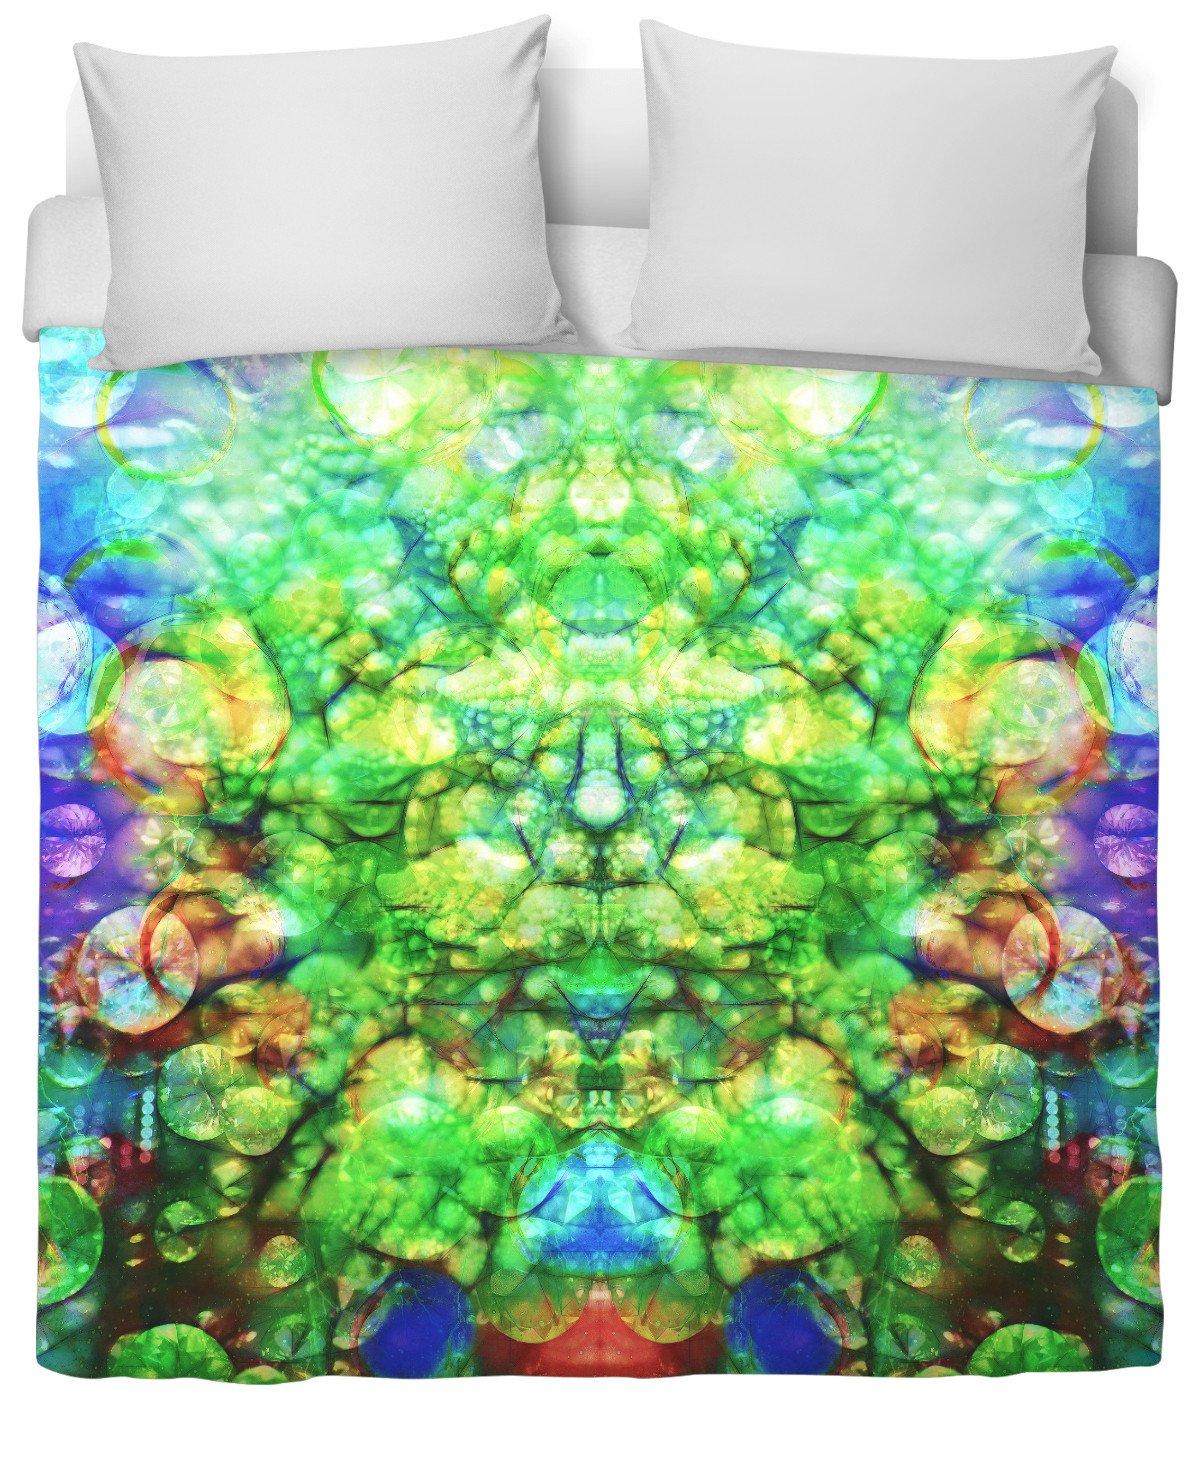 BASS IMMORTAL 30 Duvet Cover - TShirtsRUS.co